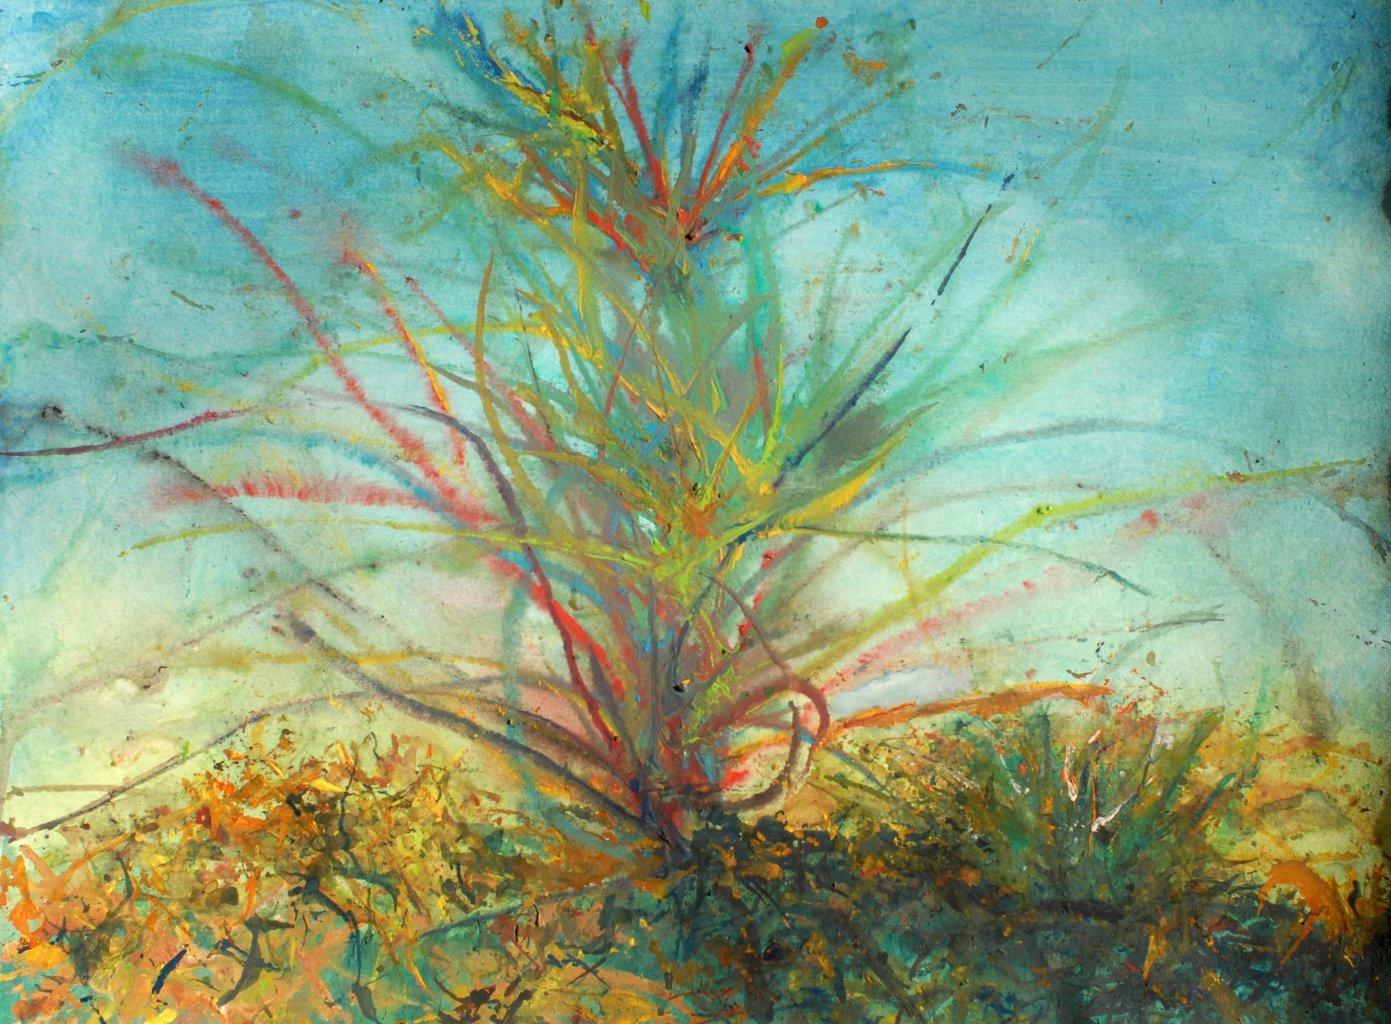 Image: A painting created by Zophobas grubs that looks like a Bromeliad